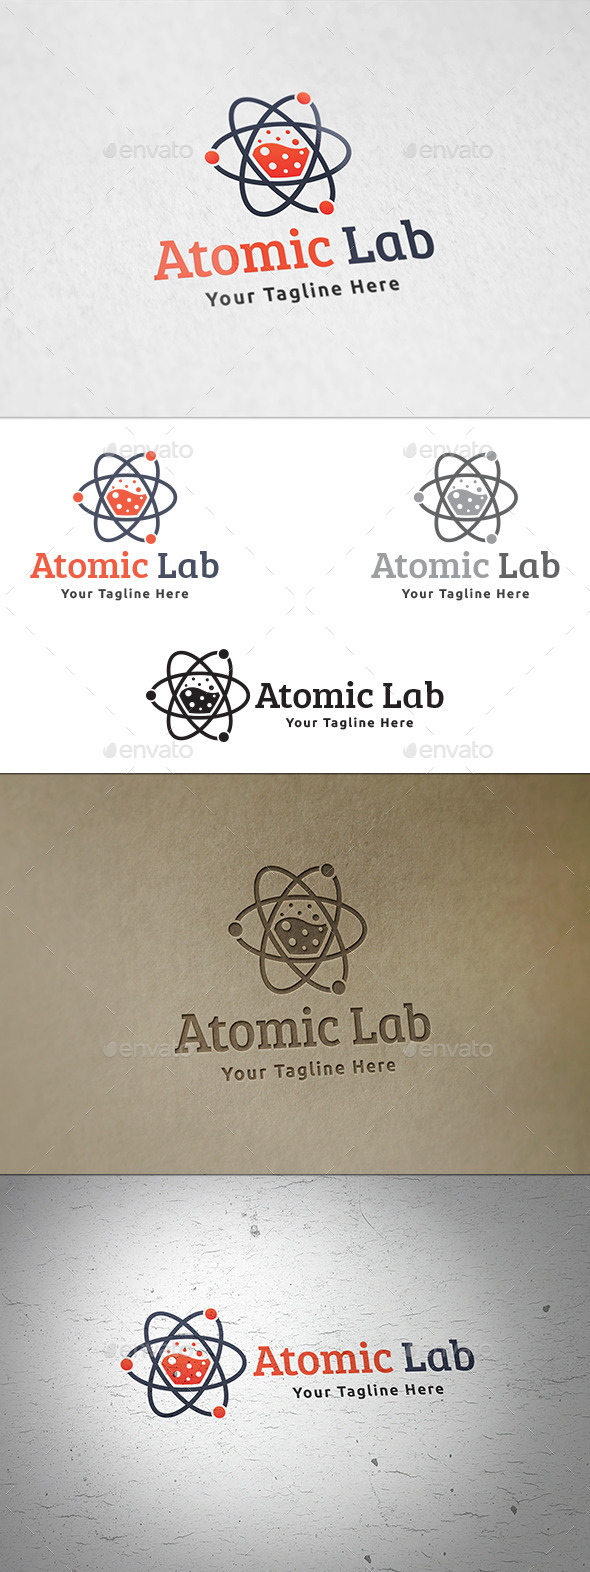 GraphicRiver Atomic Lab Logo Template 11440116